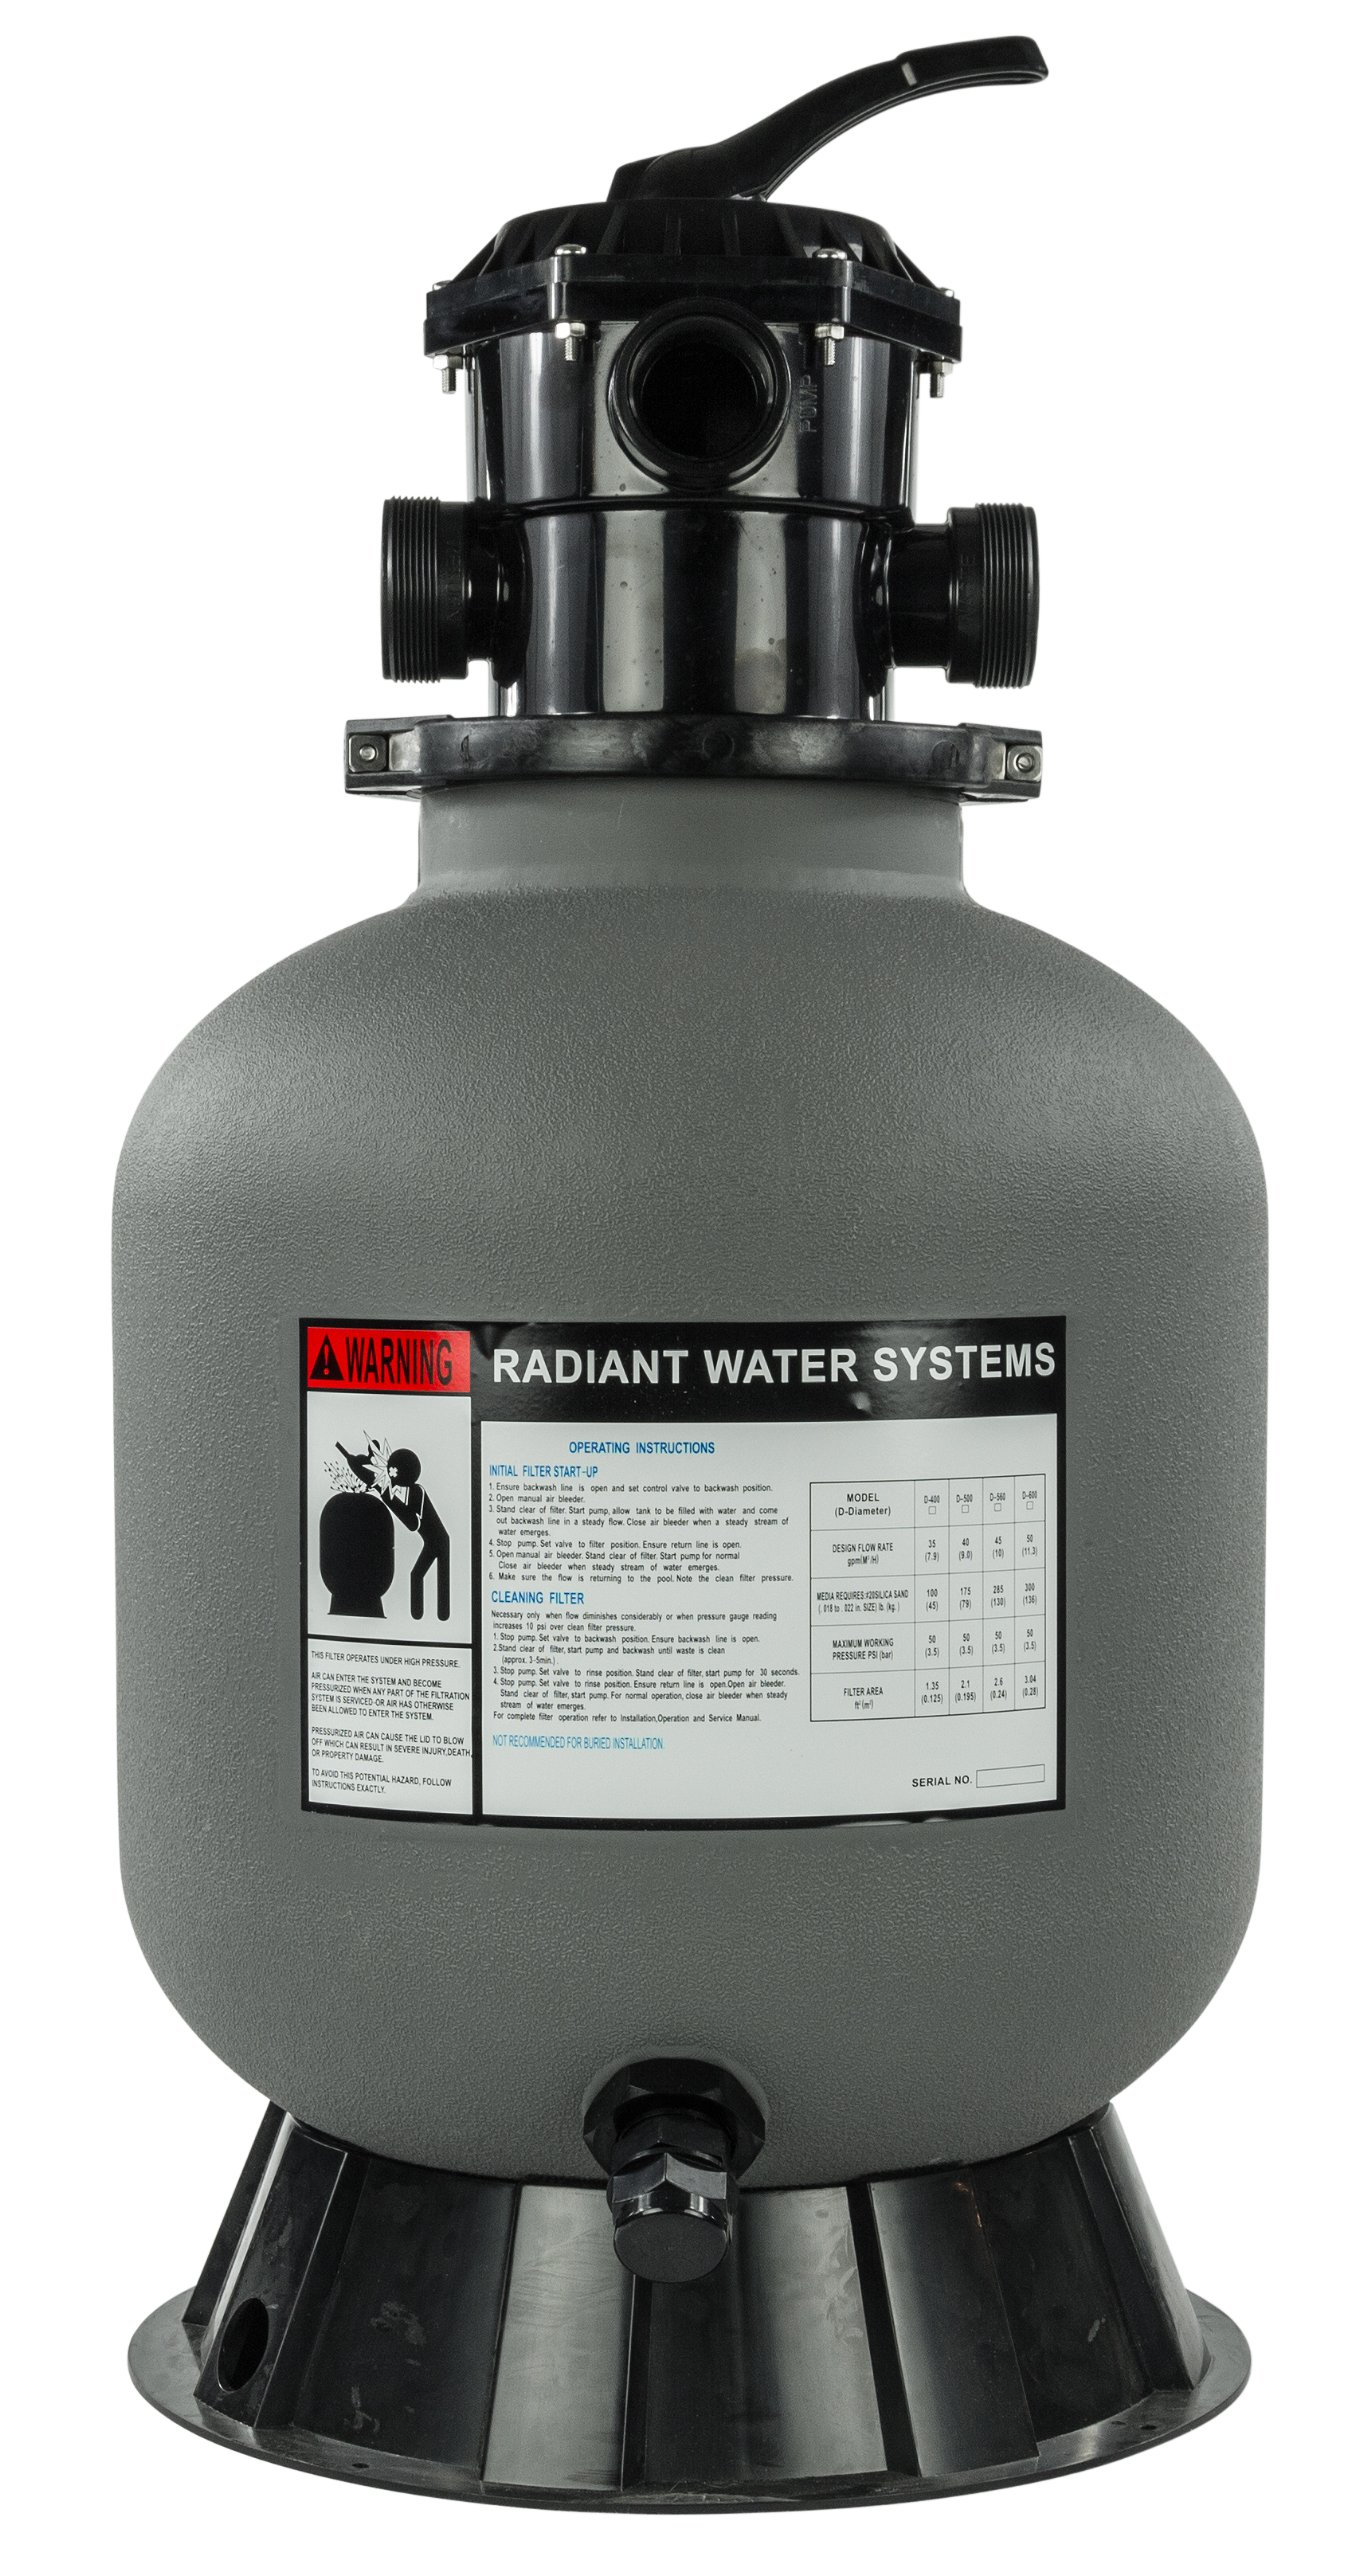 Rx Clear Radiant Sand Filter | for Above Ground Swimming Pool | 19 Inch Tank | 175 Lb Sand Capacity | Up to 21,000 Gallons by Rx Clear